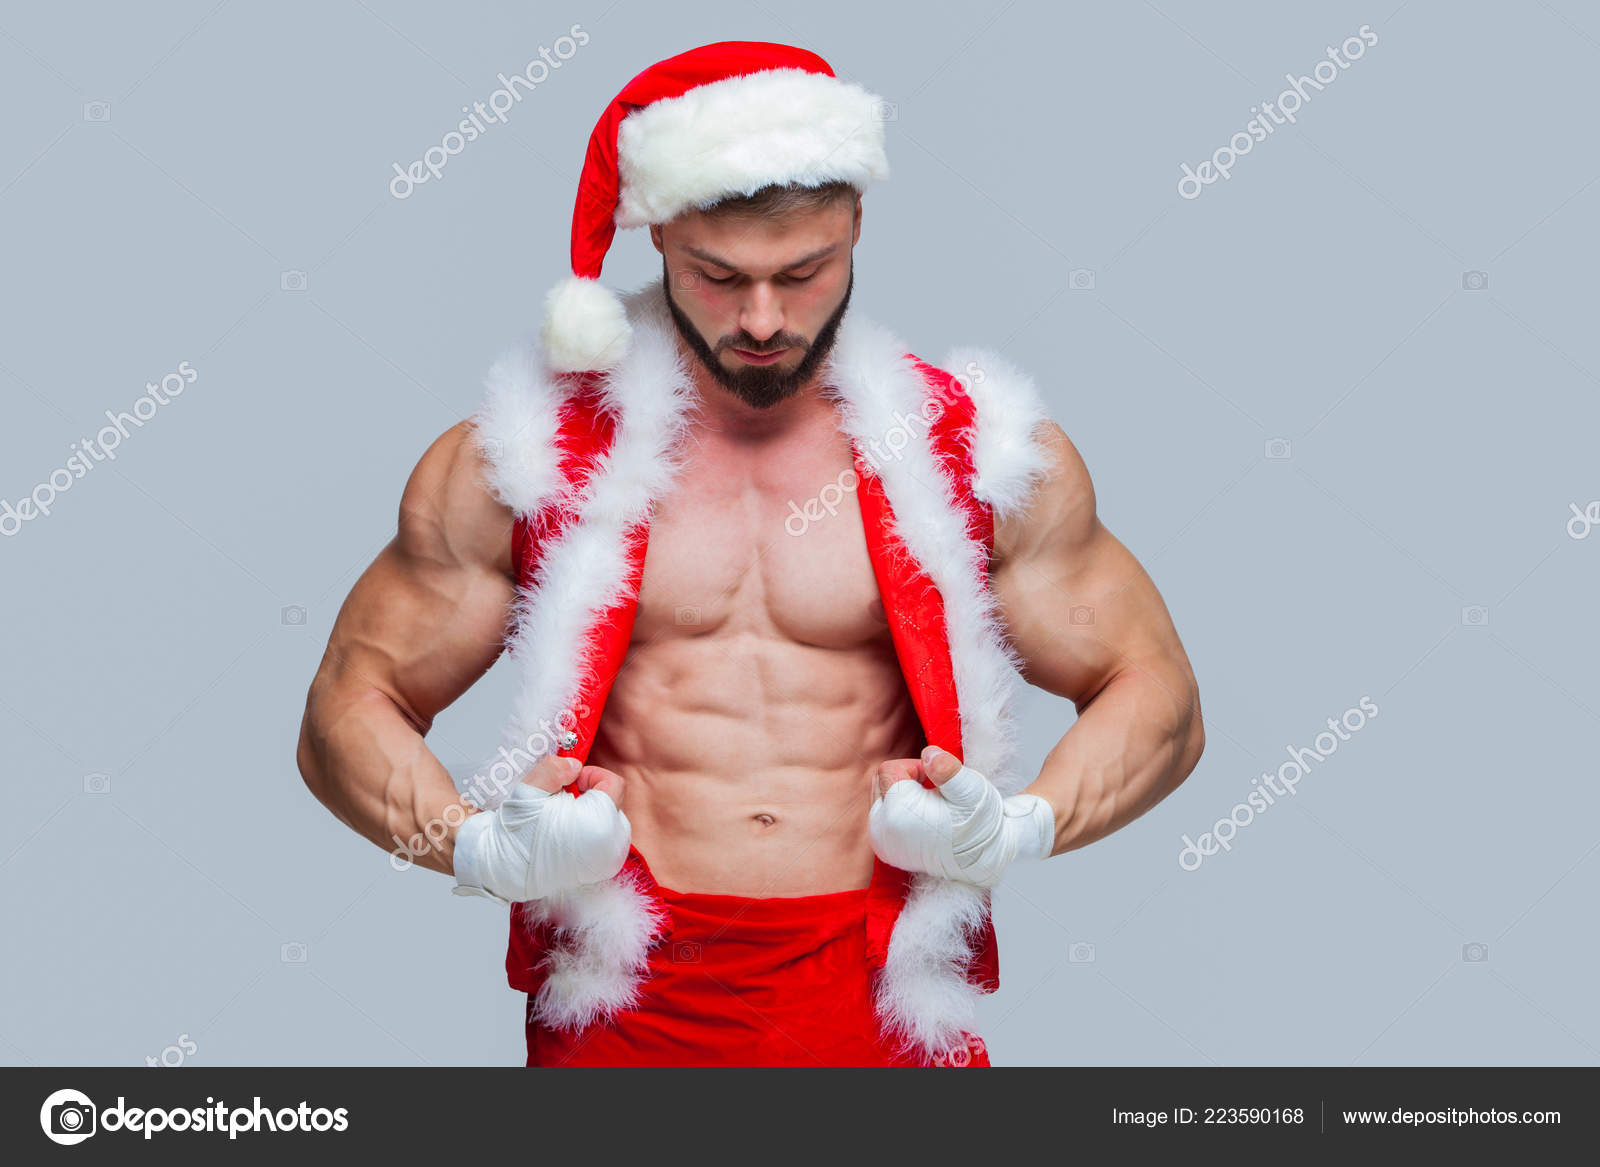 0bff02e07f933 Christmas. Sexy Santa Claus . Young muscular man wearing Santa C– stock  image